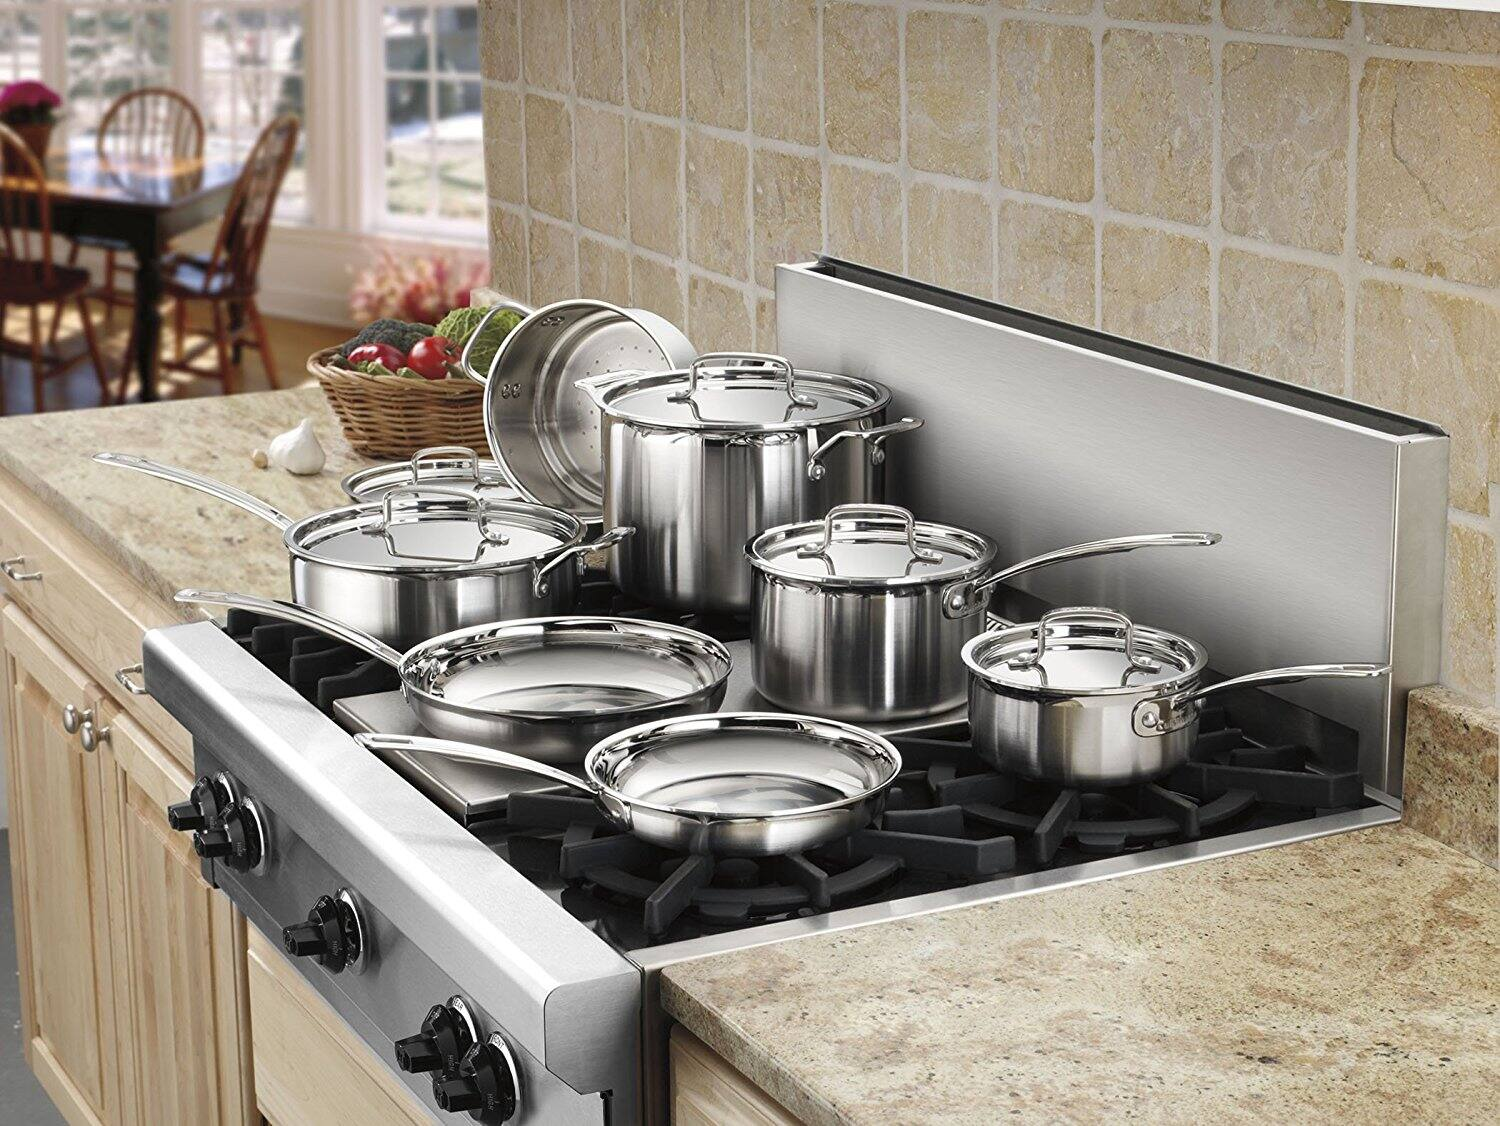 Kohls Cardholders Cuisinart 12-pc. MultiClad Stainless Steel Cookware Set + KC $30 + Free Shipping $174.99